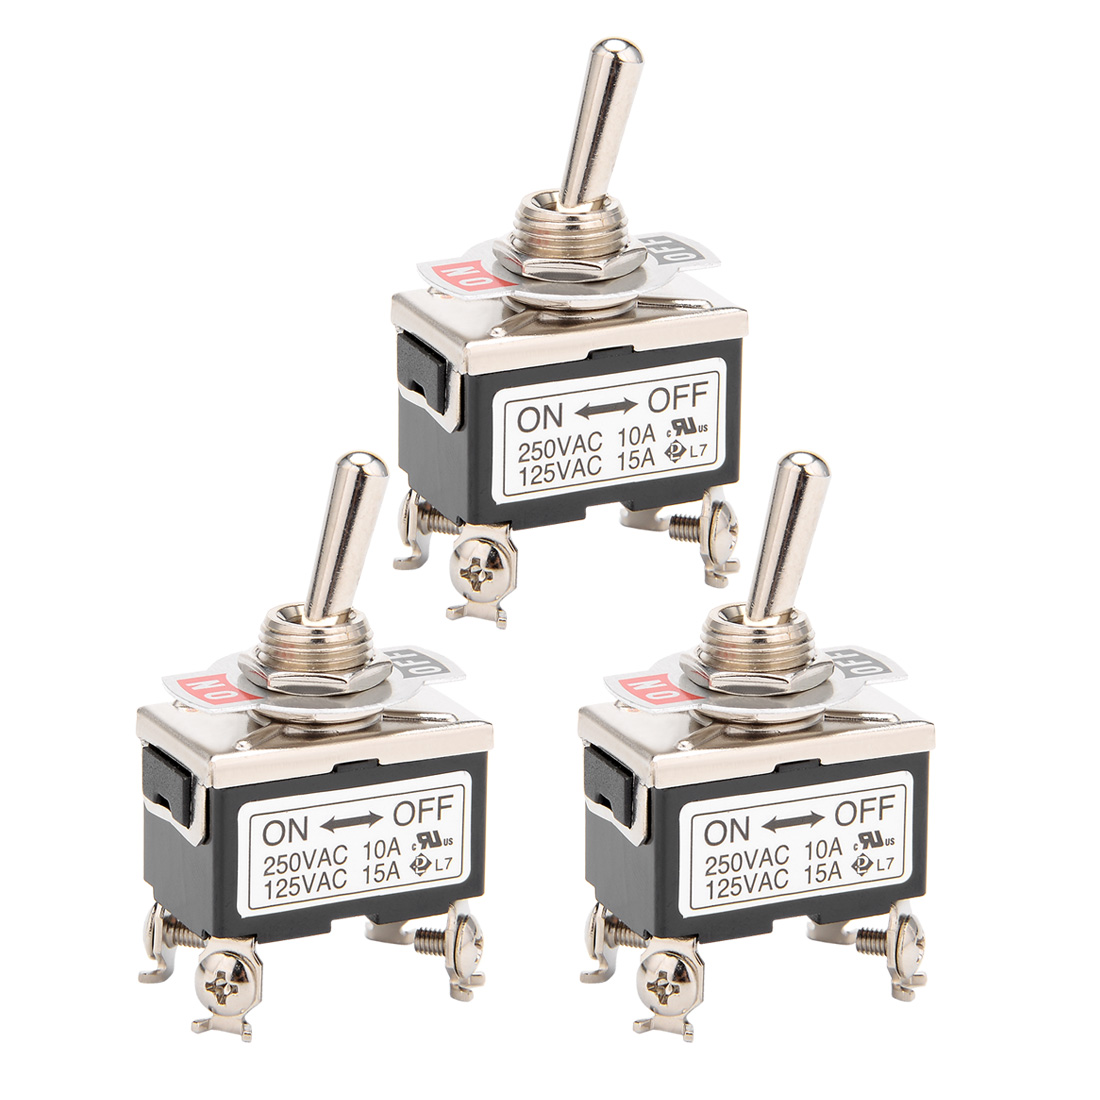 3Pcs AC 125V/15A 250V/10A ON-OFF 2P 4 Terminals Latching DPST Toggle Switch